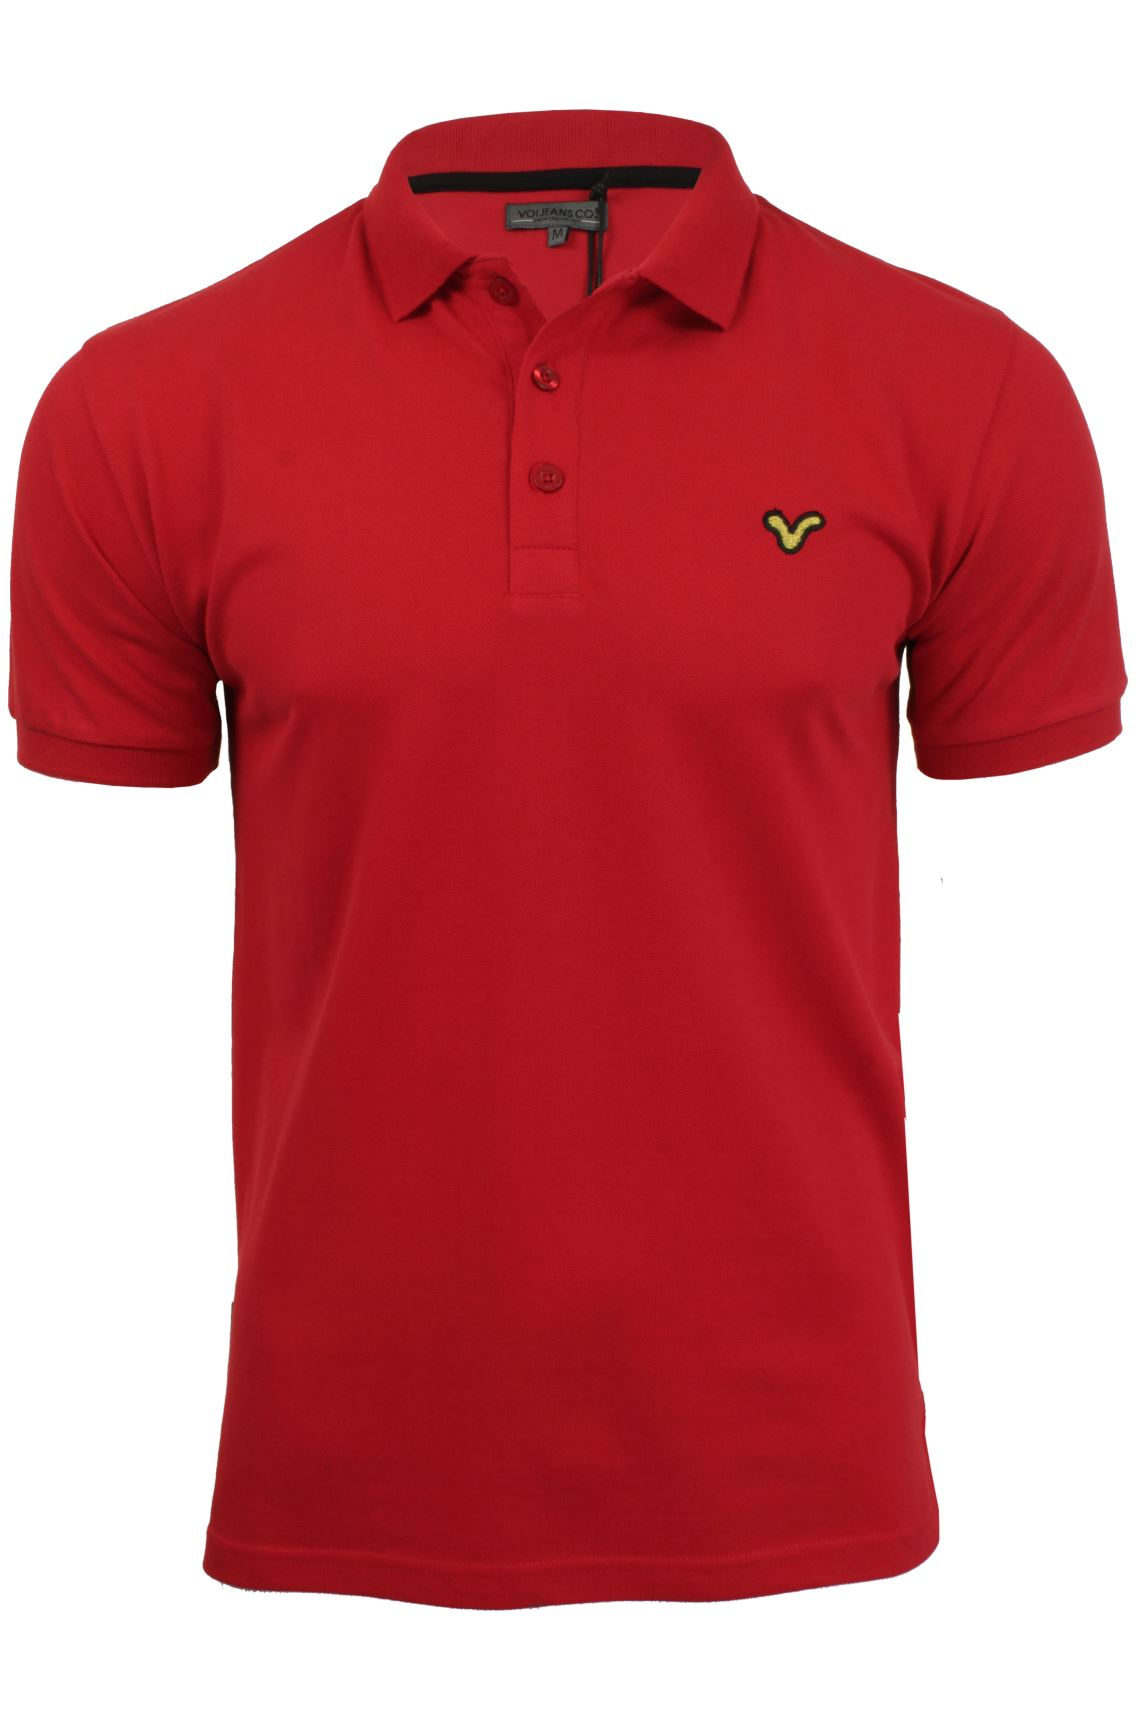 Mens Polo Shirt by Voi Jeans 'Redford'-Main Image